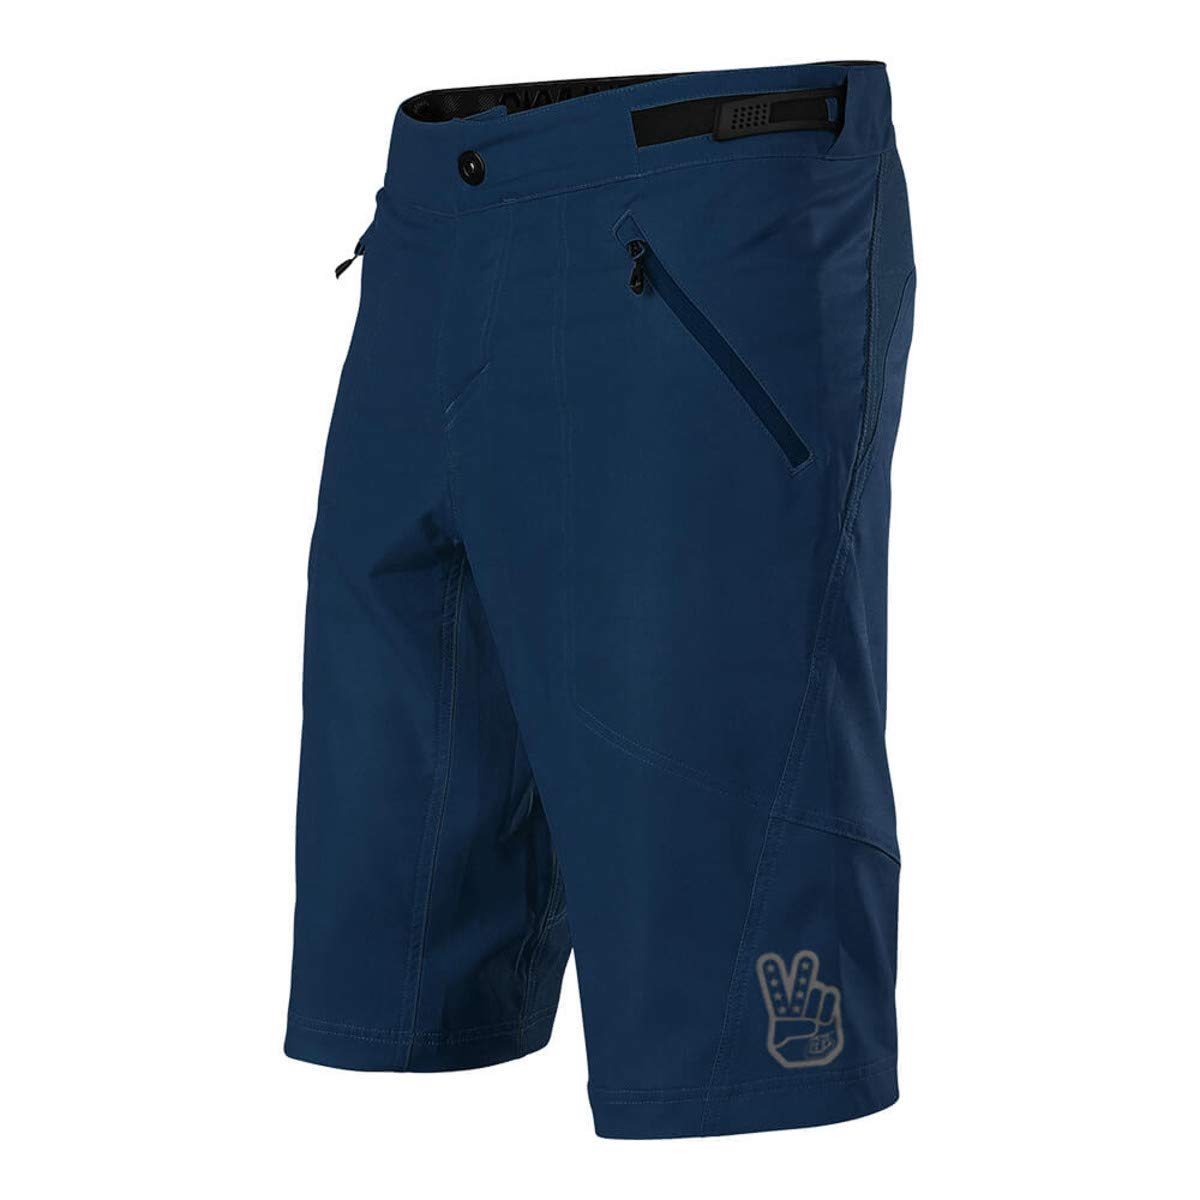 Troy Lee Designs Skyline Short - Boys' Solid Navy, 24 by Troy Lee Designs